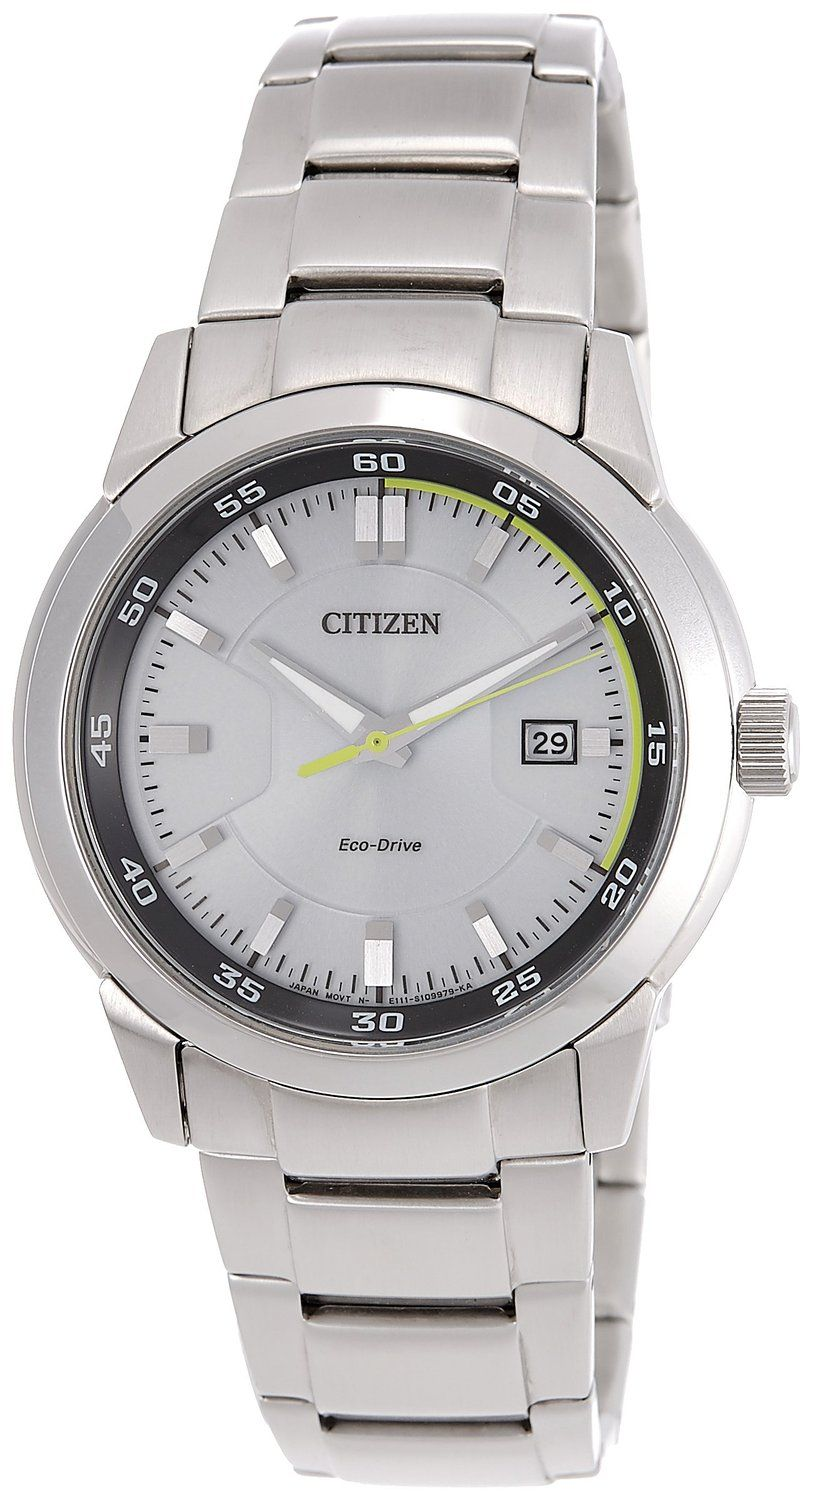 d4a5a3ed381 Buy Citizen Eco-Drive Analog White Dial Men s Watch - BM7140-54A Online at  Low Prices in India - Amazon.in